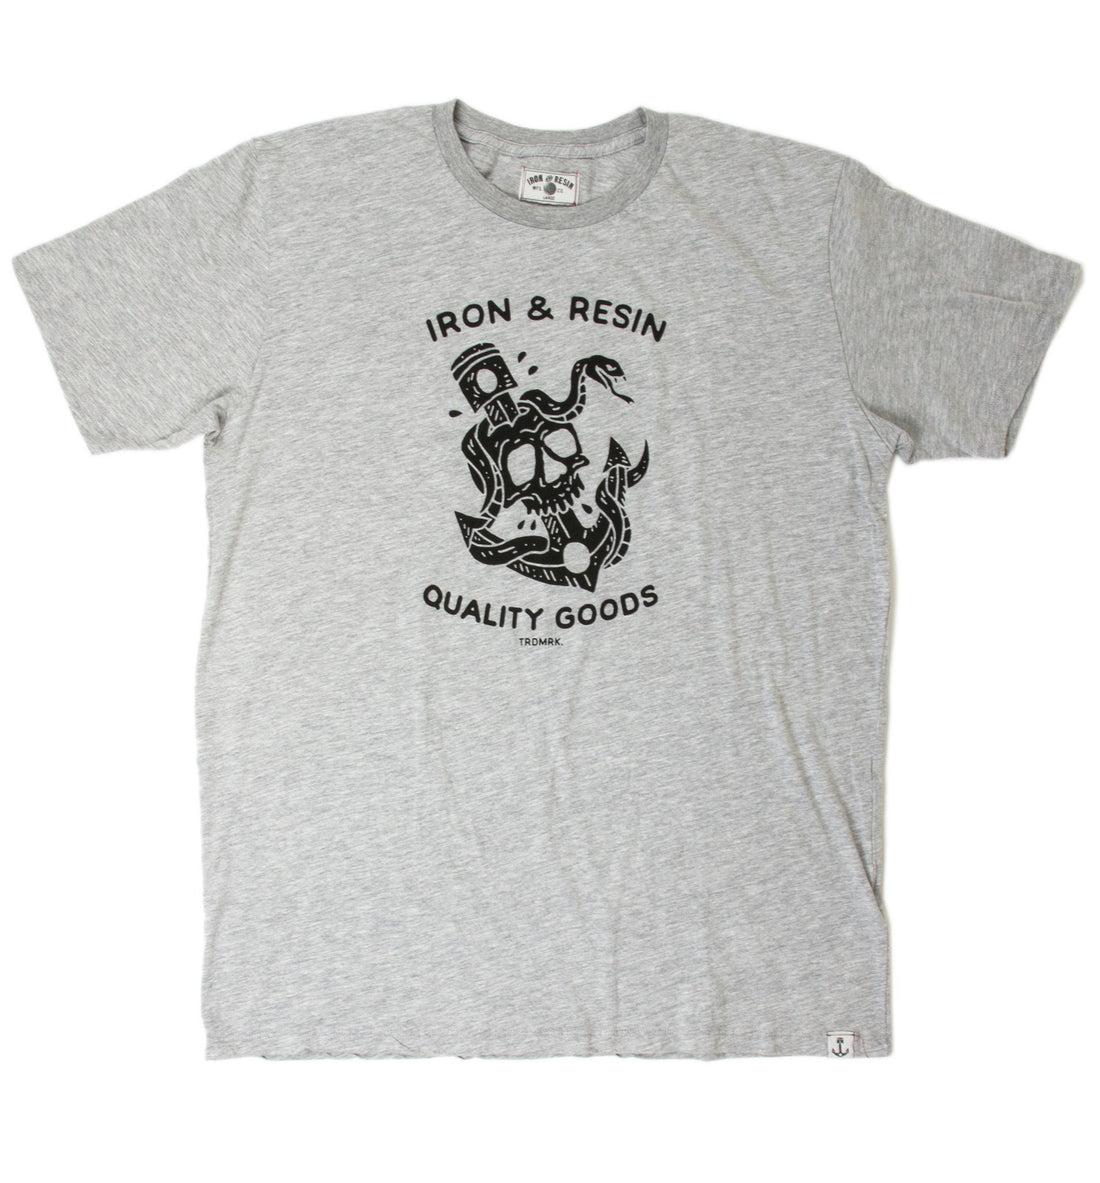 INR Flash Tee - Apparel: Men's: Graphic T-Shirts - Iron and Resin